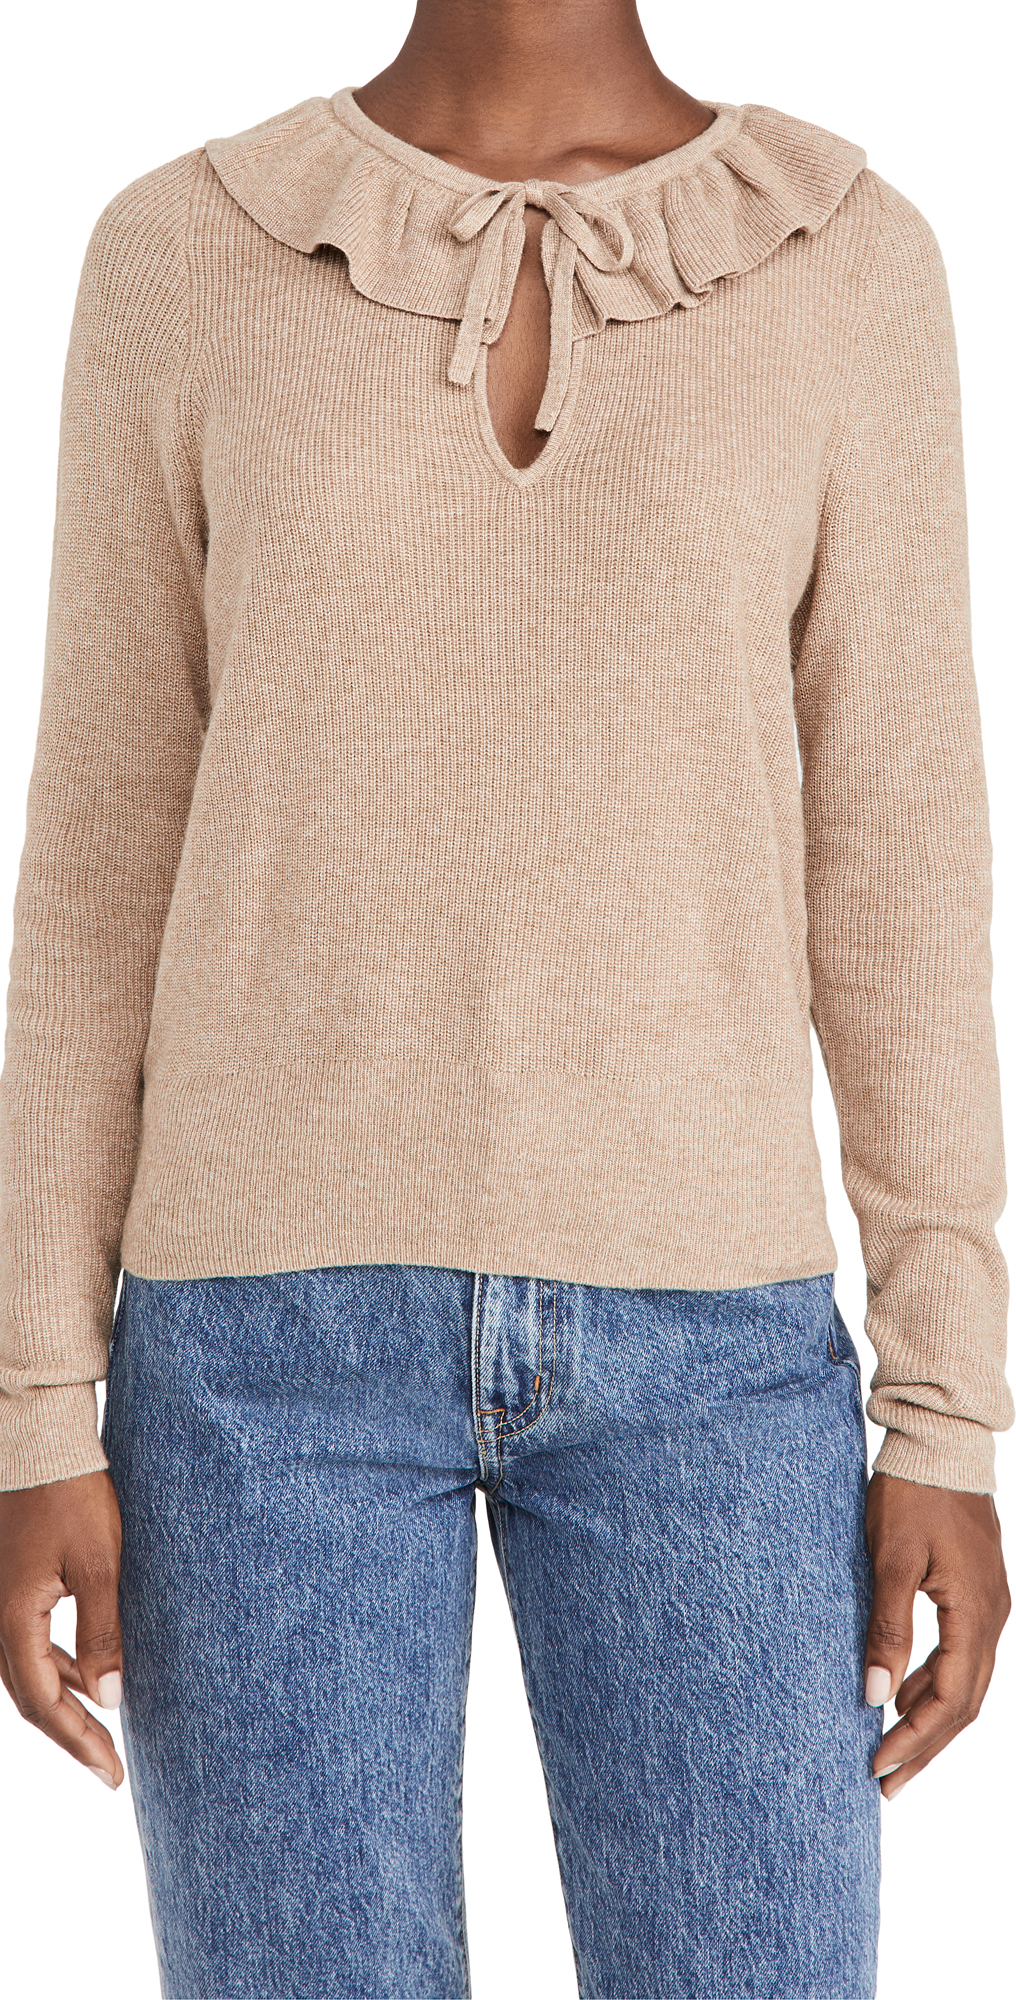 Madewell Catherine Ruffle Tie Neck Sweater